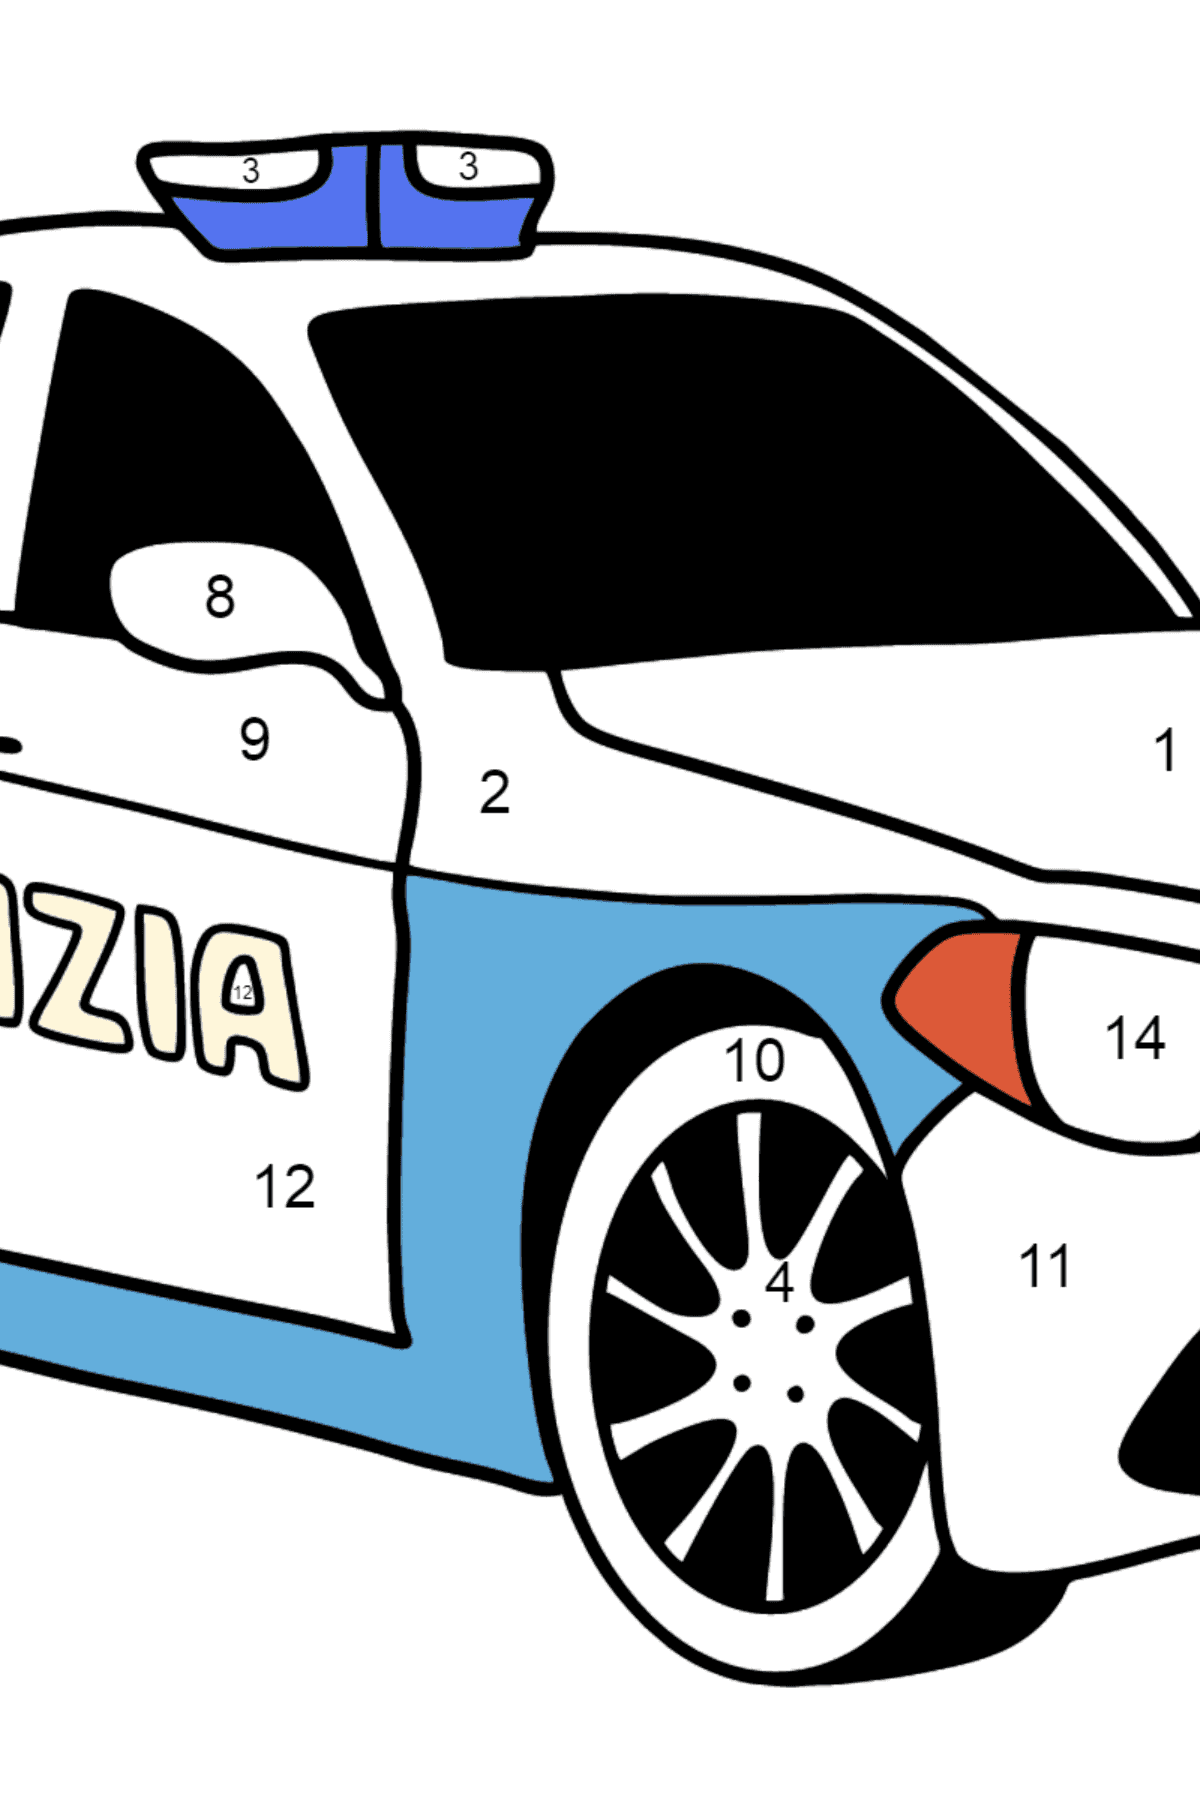 Police Car in Italy coloring page - Coloring by Numbers for Kids